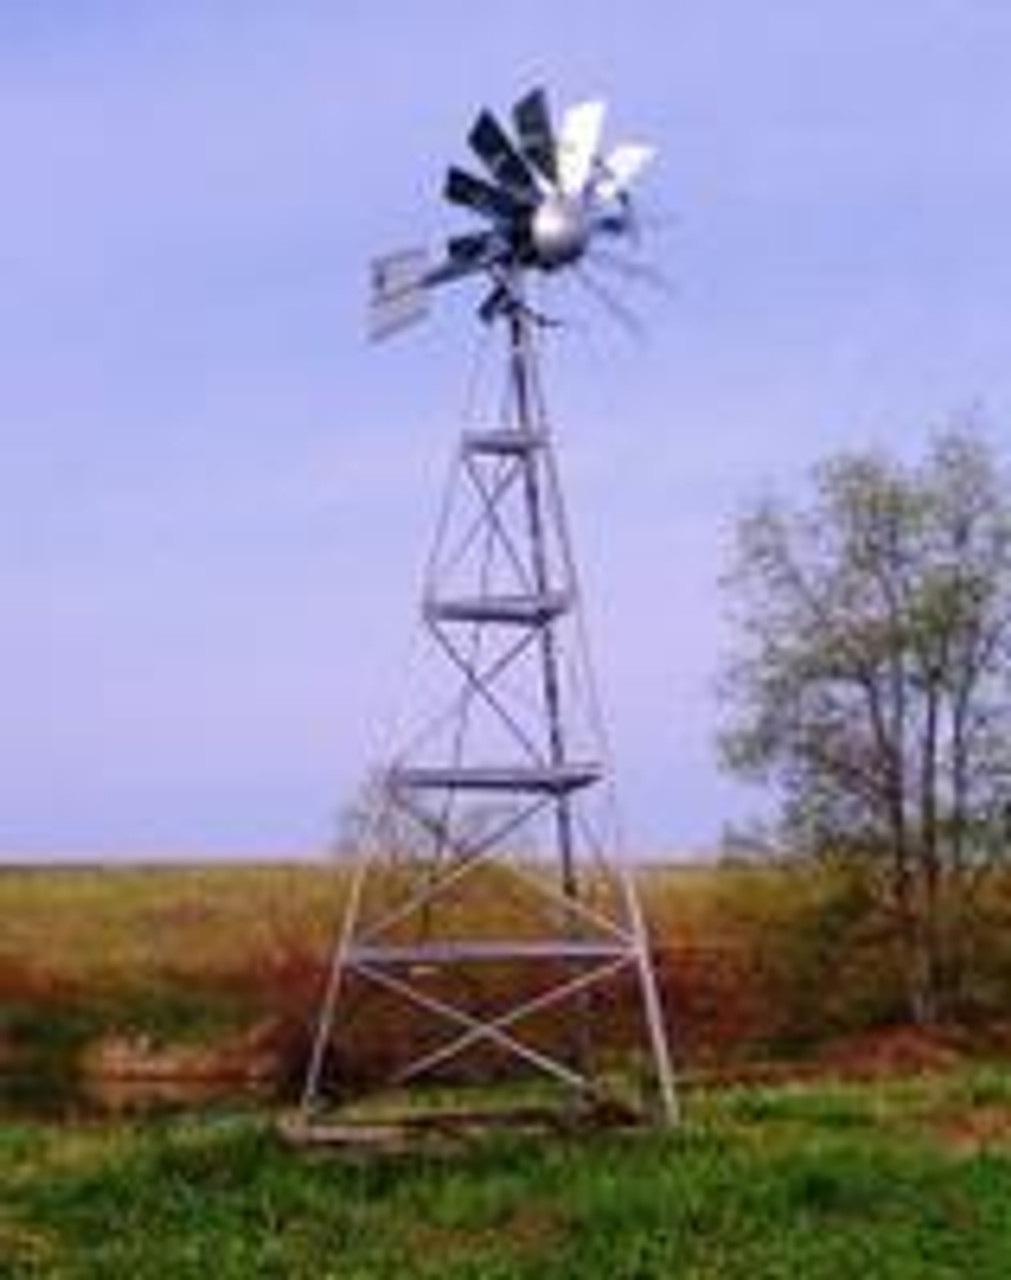 Windmill Aeration